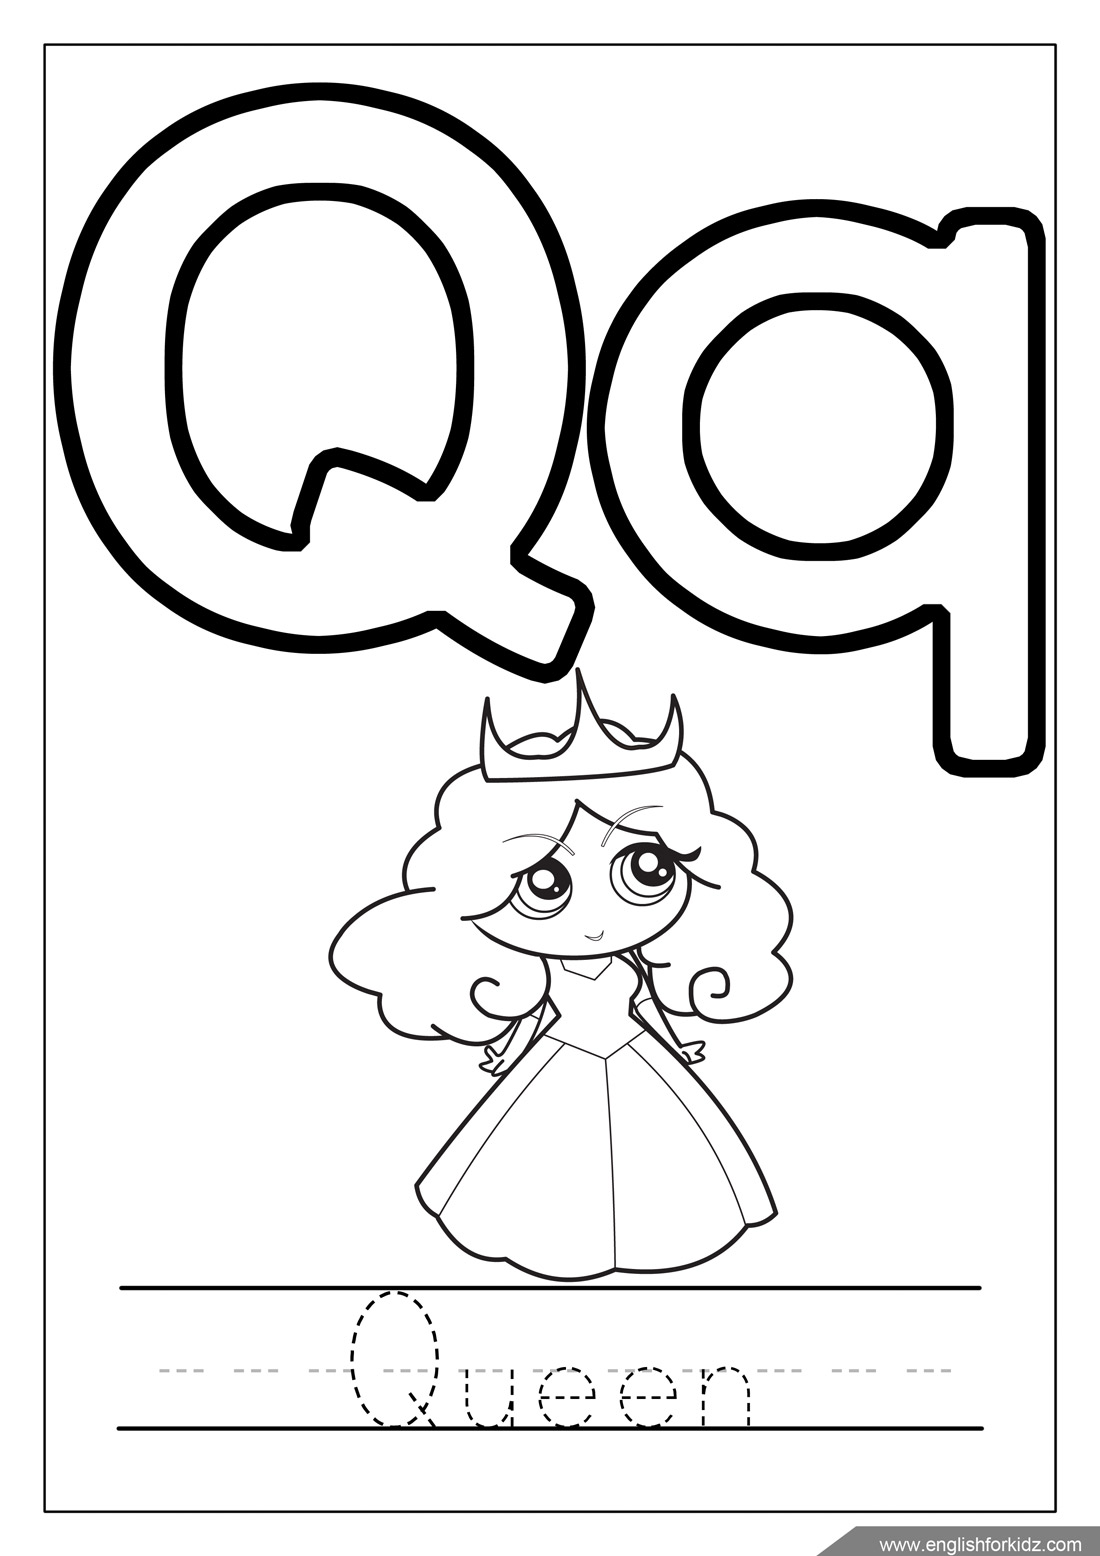 coloring letters animal alphabet coloring pages free at getcoloringscom coloring letters